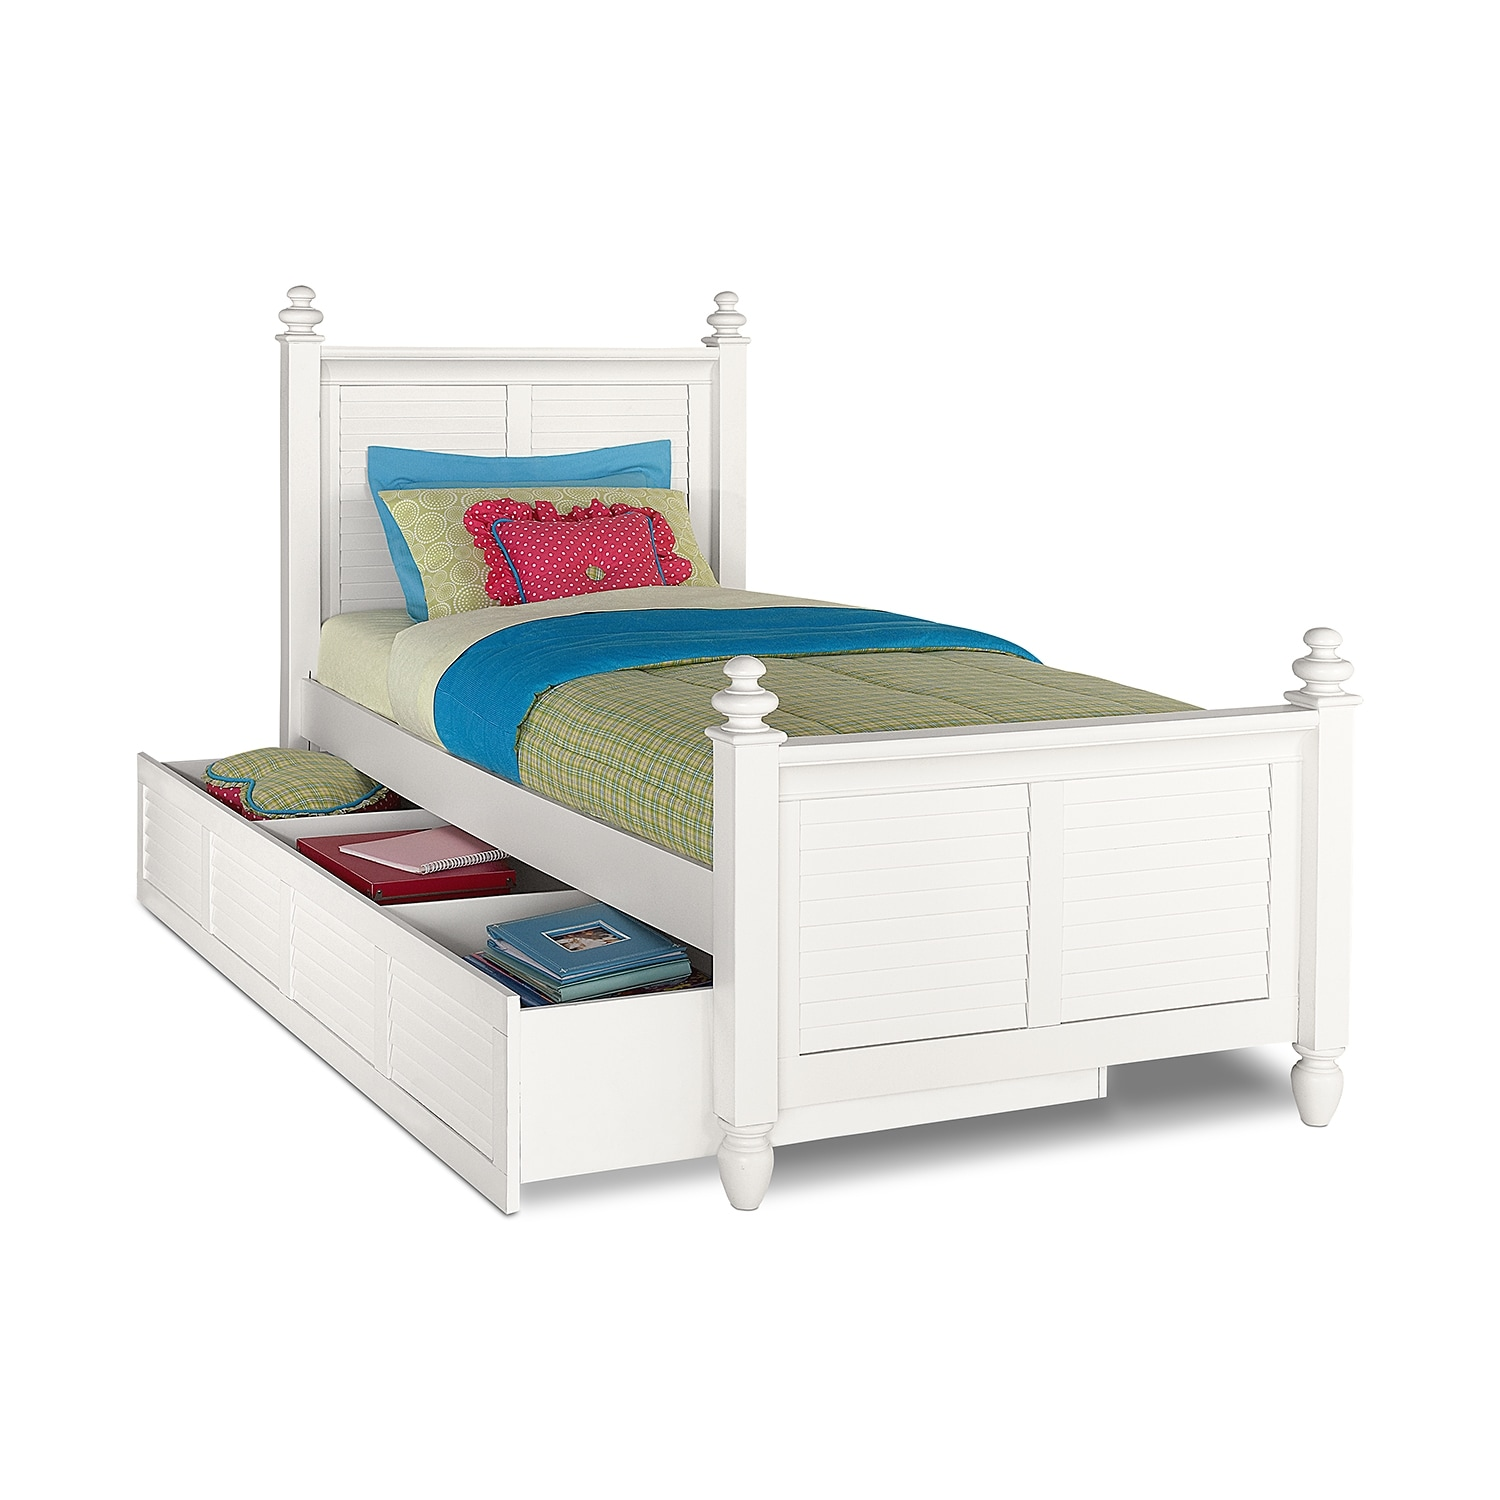 Value city furniture Seaside collection furniture